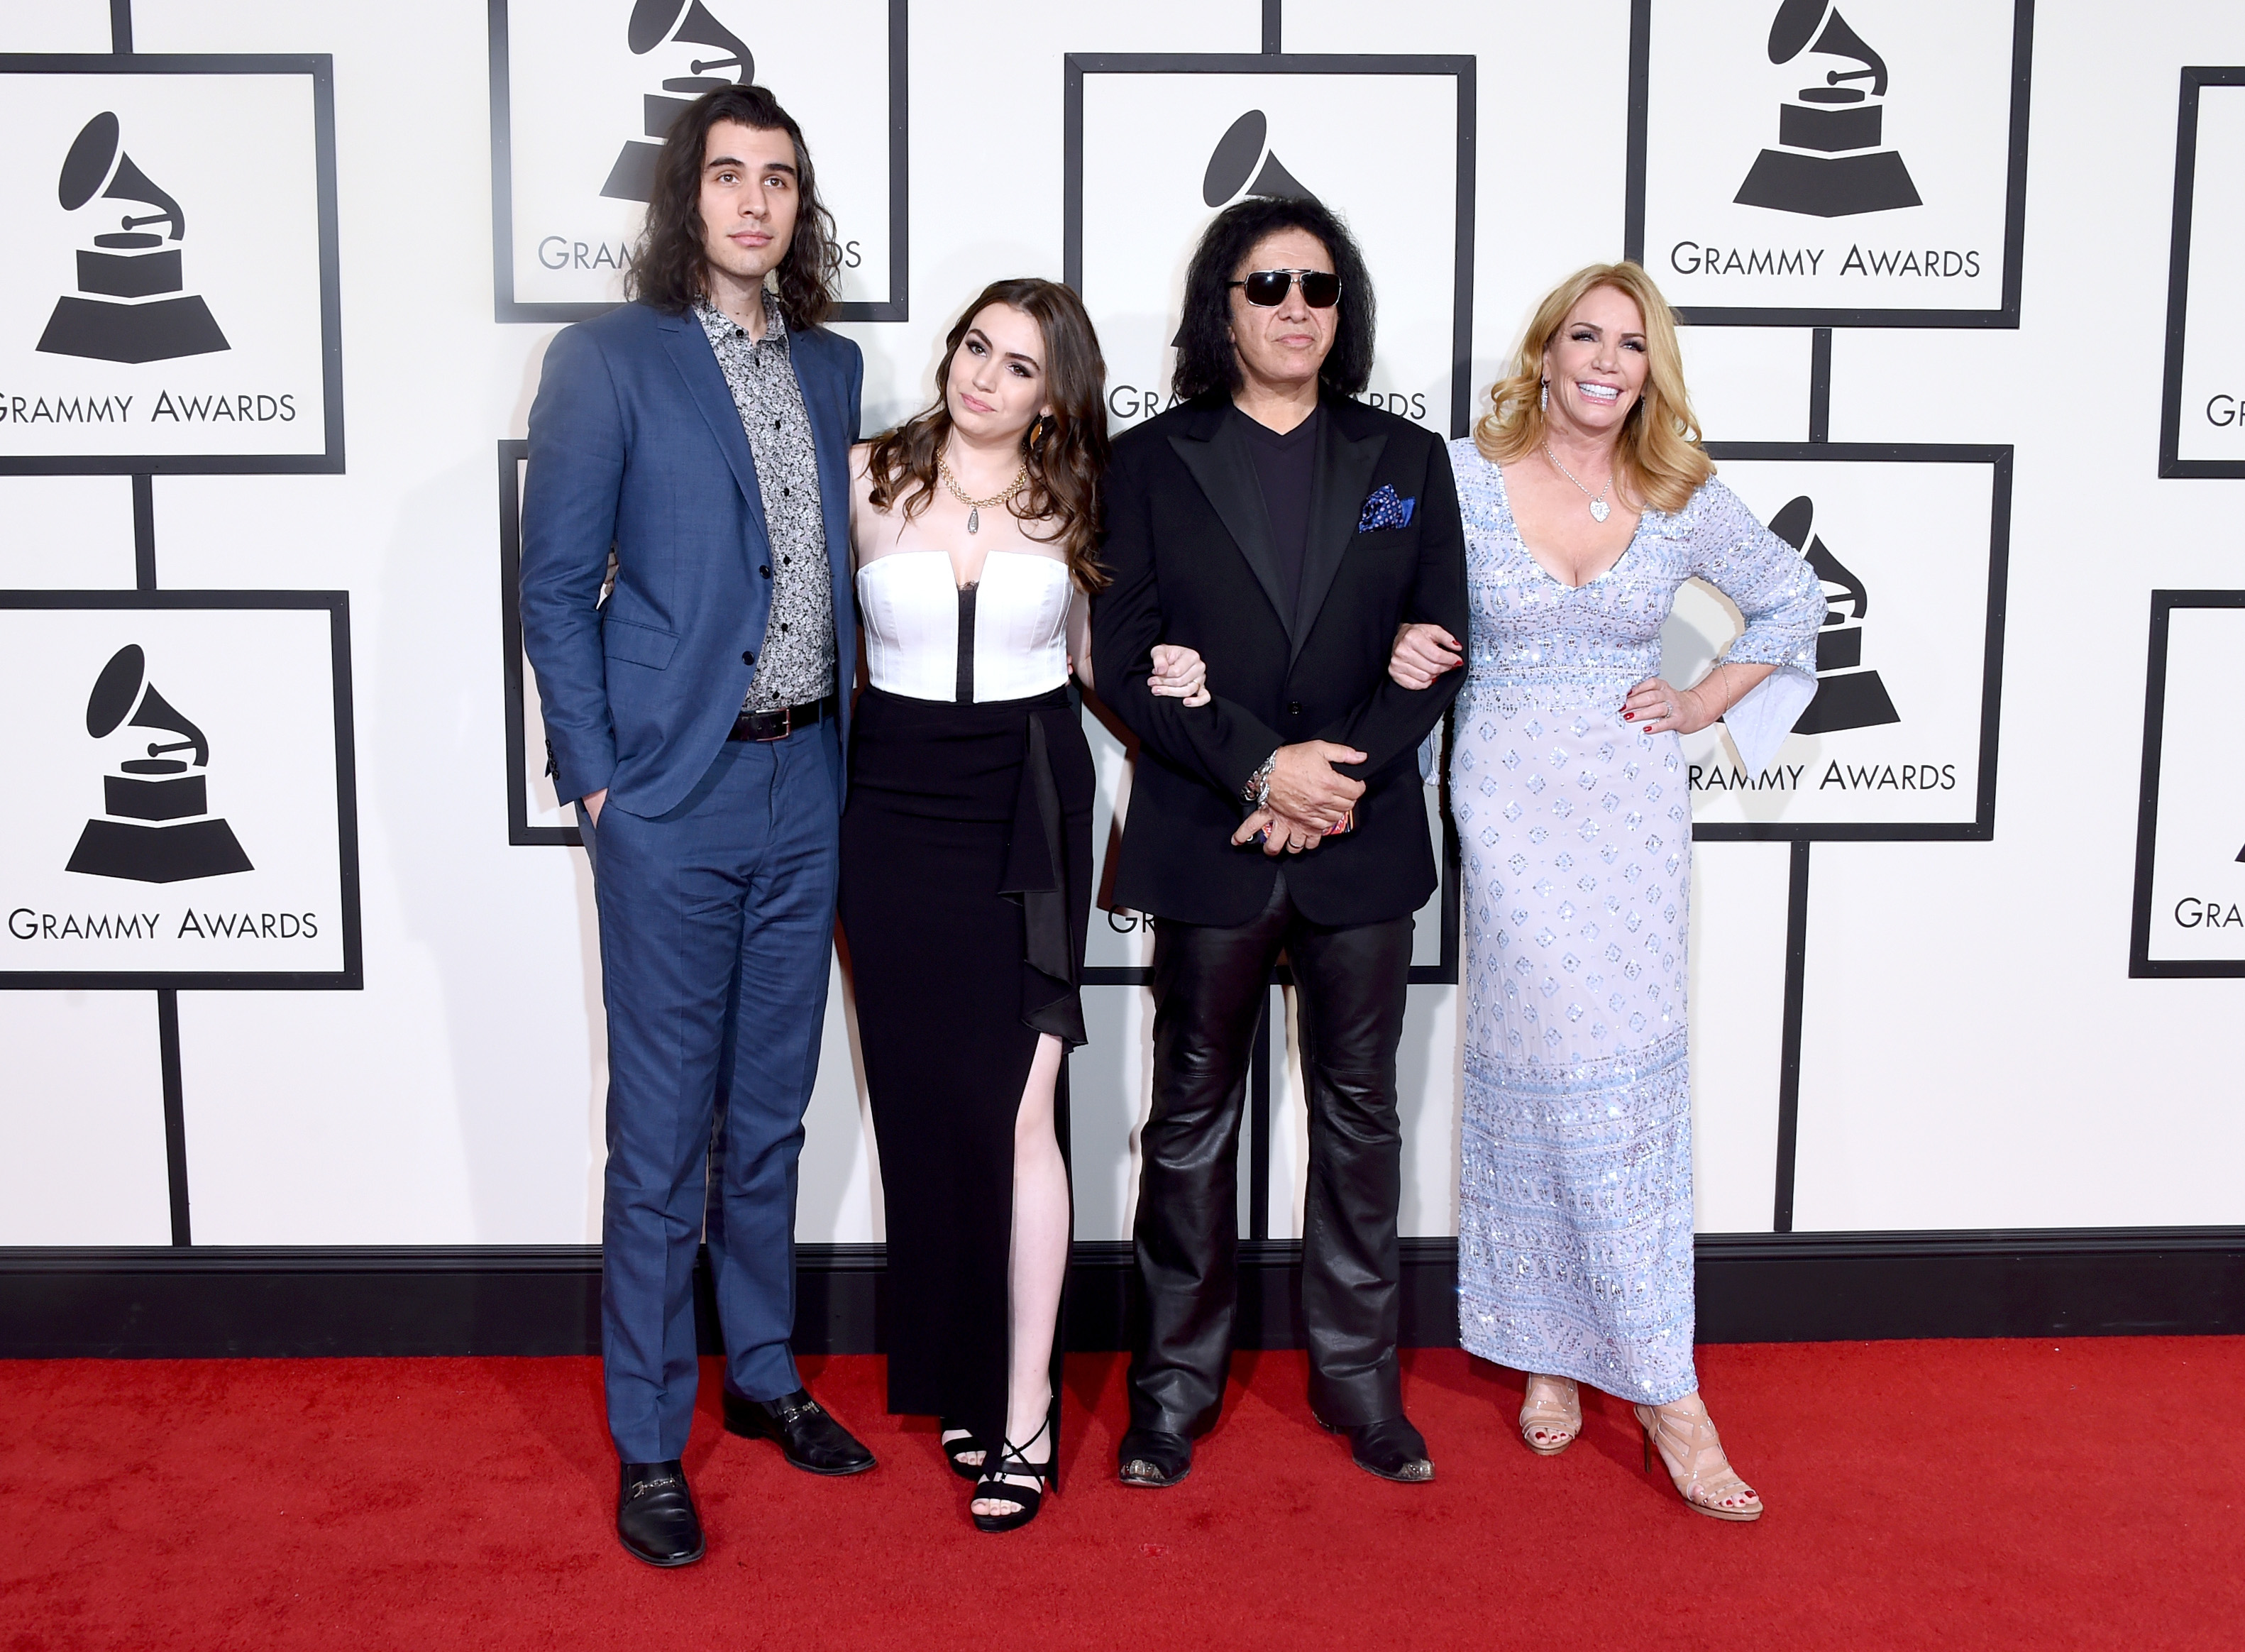 From left: Nick Simmons, Sophie Simmons, Gene Simmons, and Shannon Tweed attend the 58th GRAMMY Awards at Staples Center on Feb. 15, 2016 in Los Angeles.